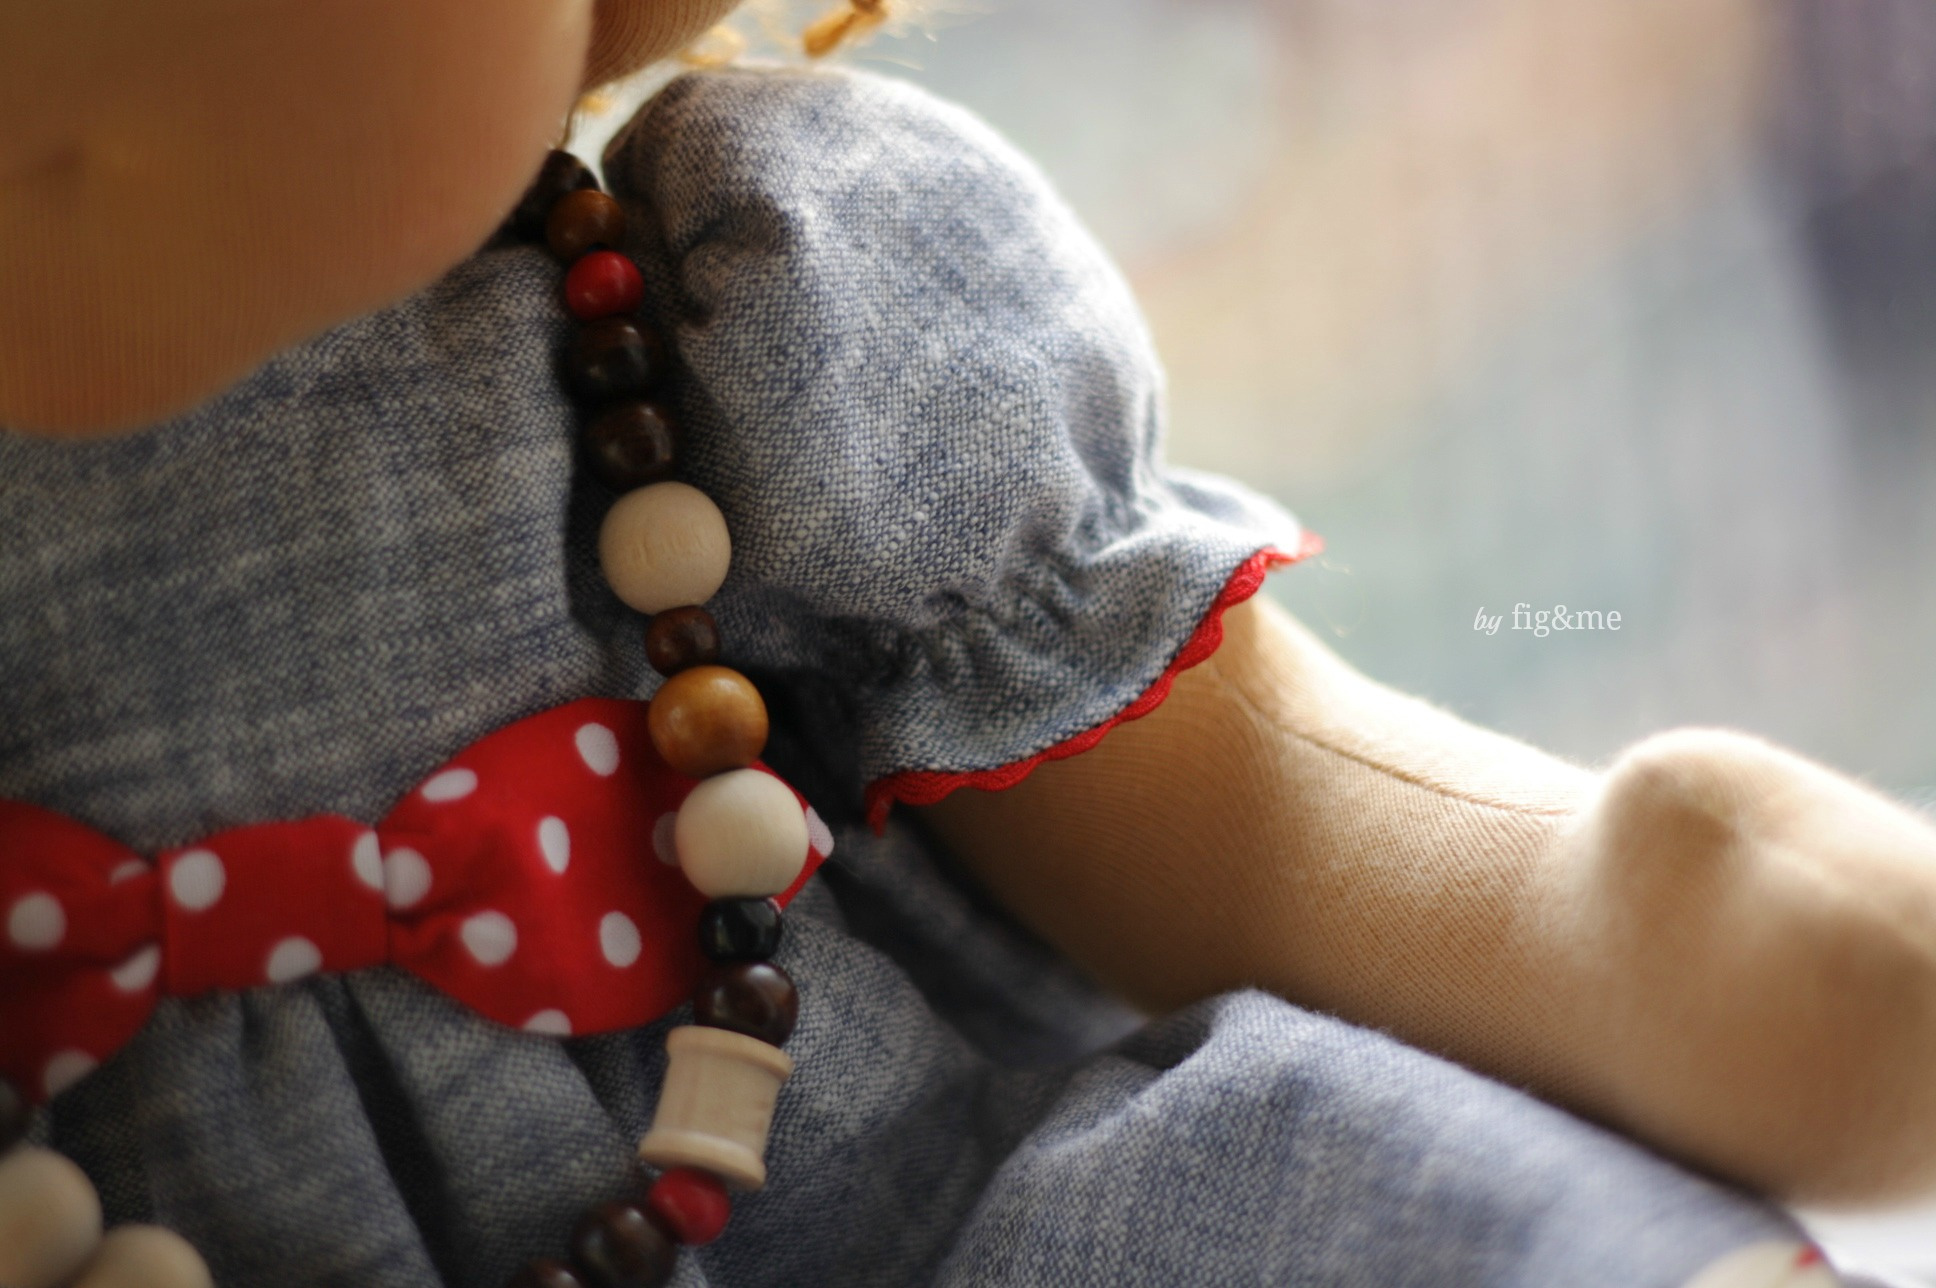 Little puff sleeve, with red ric rac, wooden bead necklace and polka dot bow.